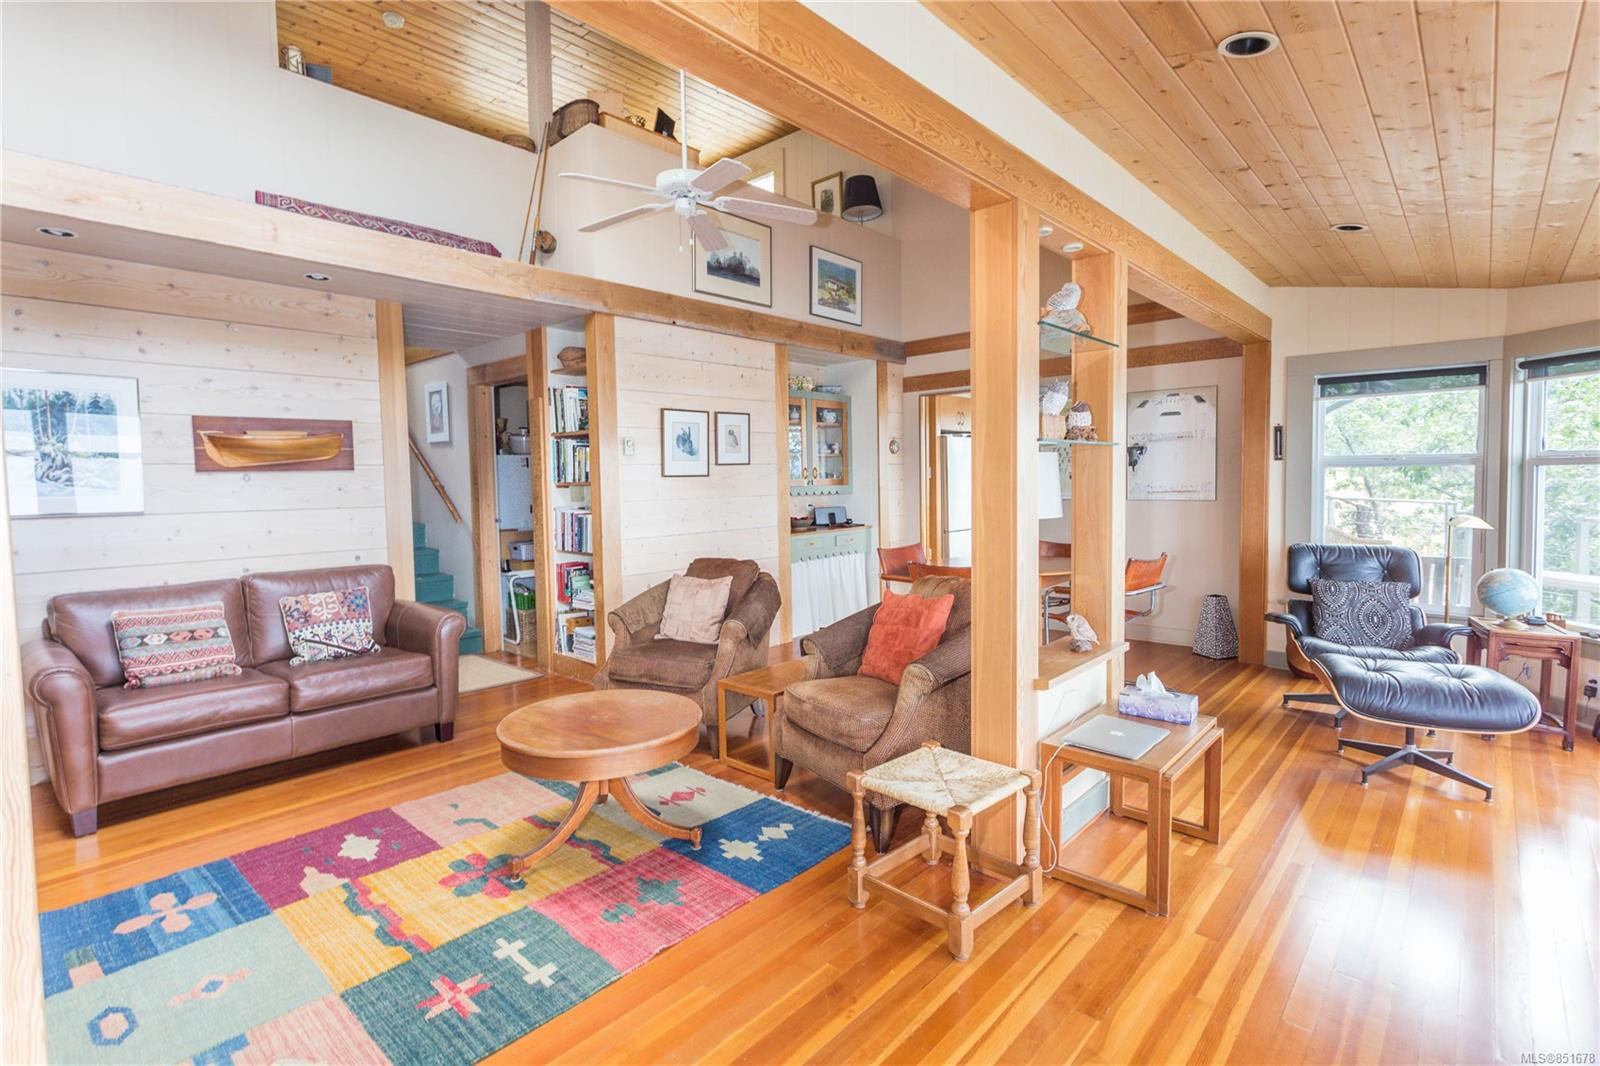 Photo 12: Photos: 262 Forbes Dr in : Isl Thetis Island House for sale (Islands)  : MLS®# 851678